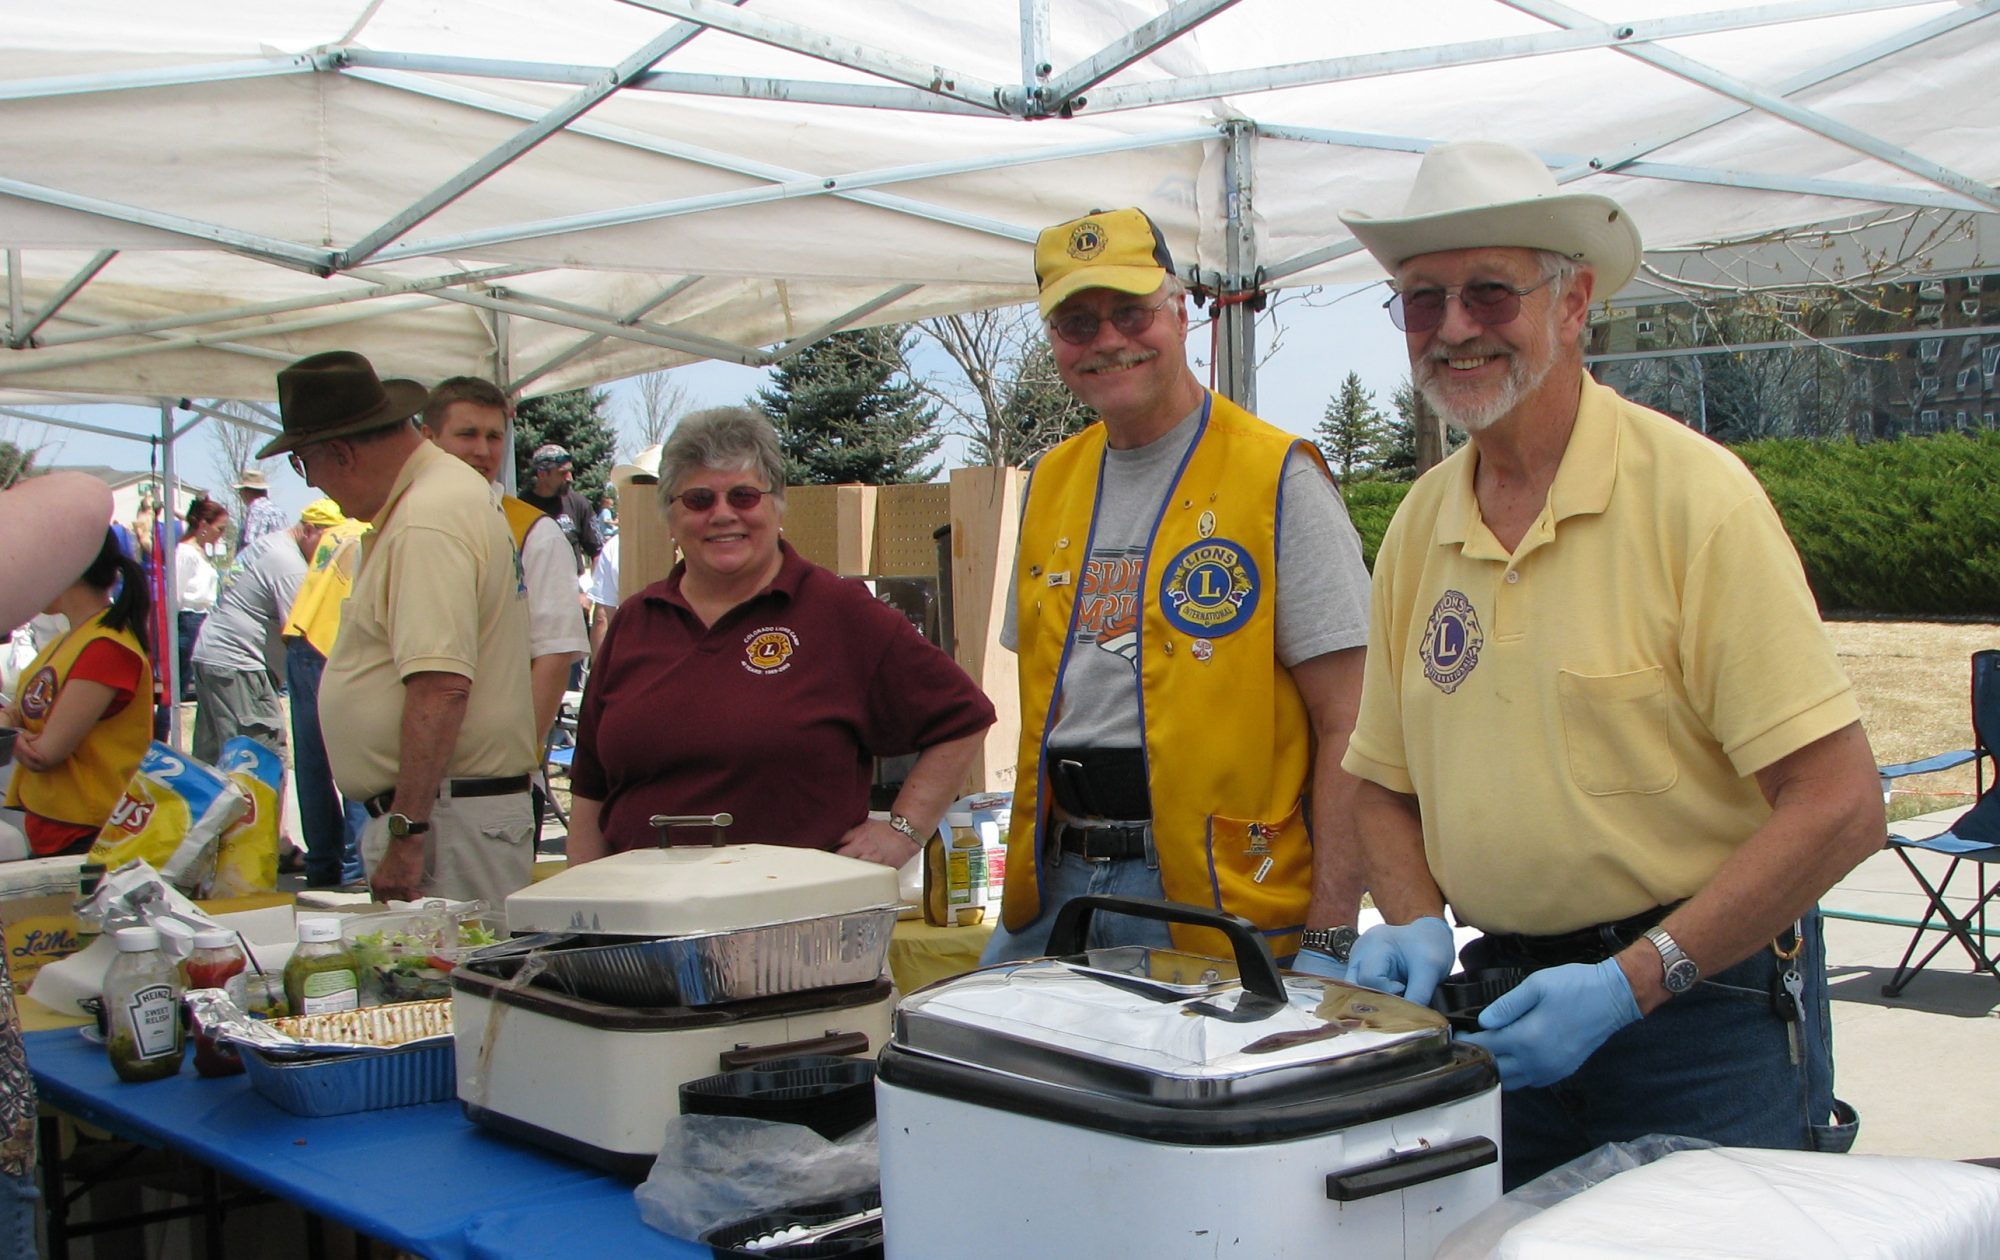 Poudre Valley Lions Club